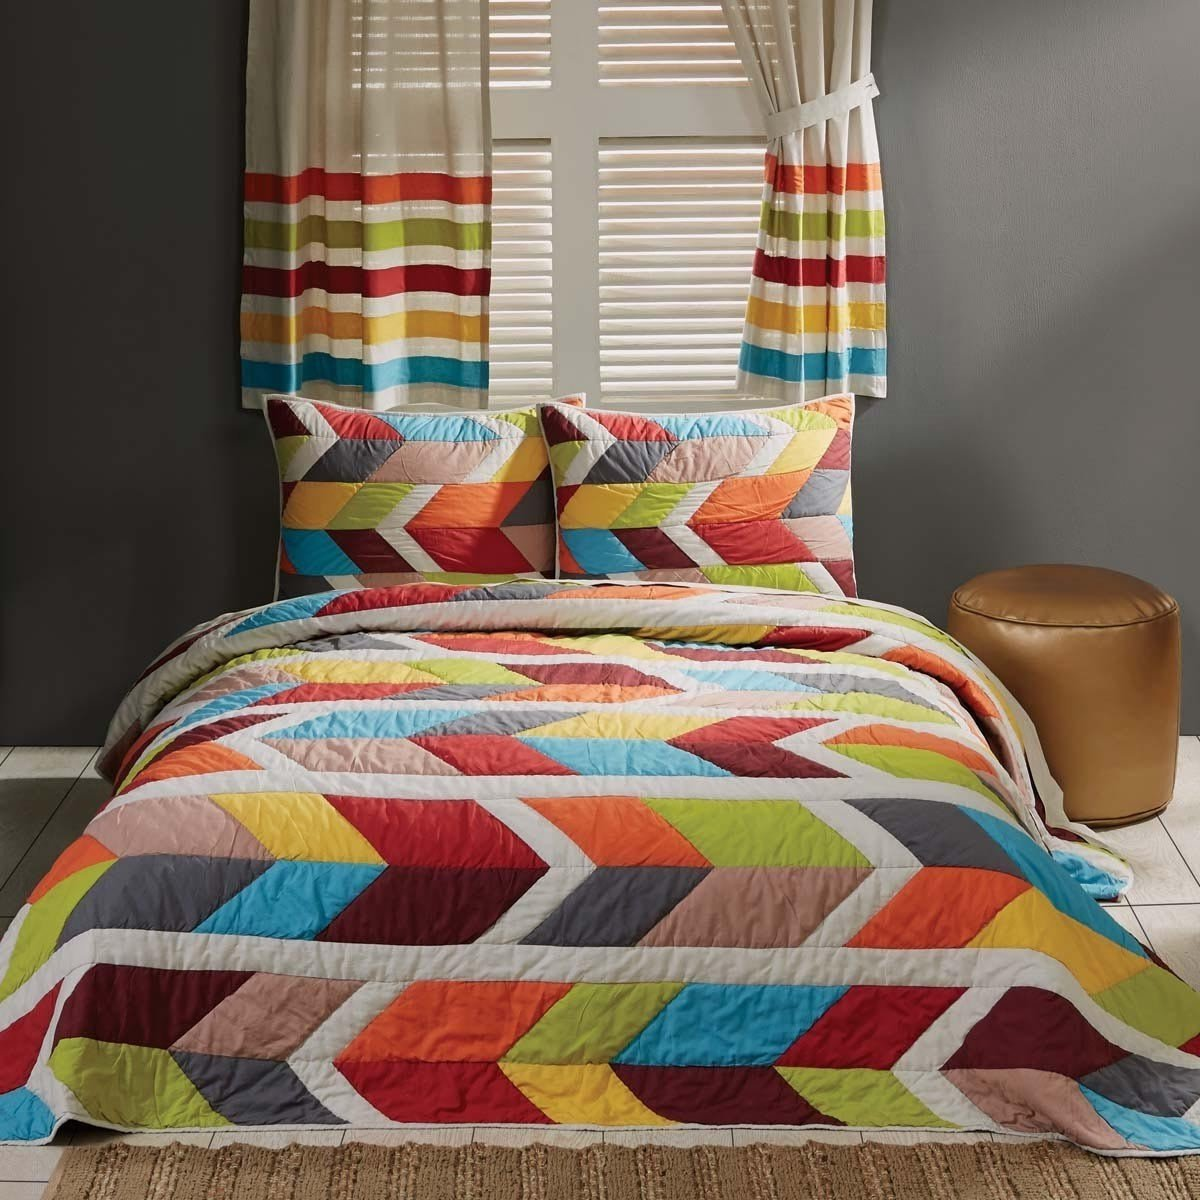 3 Piece Girls Rainbow Geometric Stripes Theme Quilt King Set, Beautiful Colorful Girly Multi Arrow Horozontal Striped Pattern, Pin Tuck Puckered Bedding, Vibrant Colors Red Blue Green Orange Grey